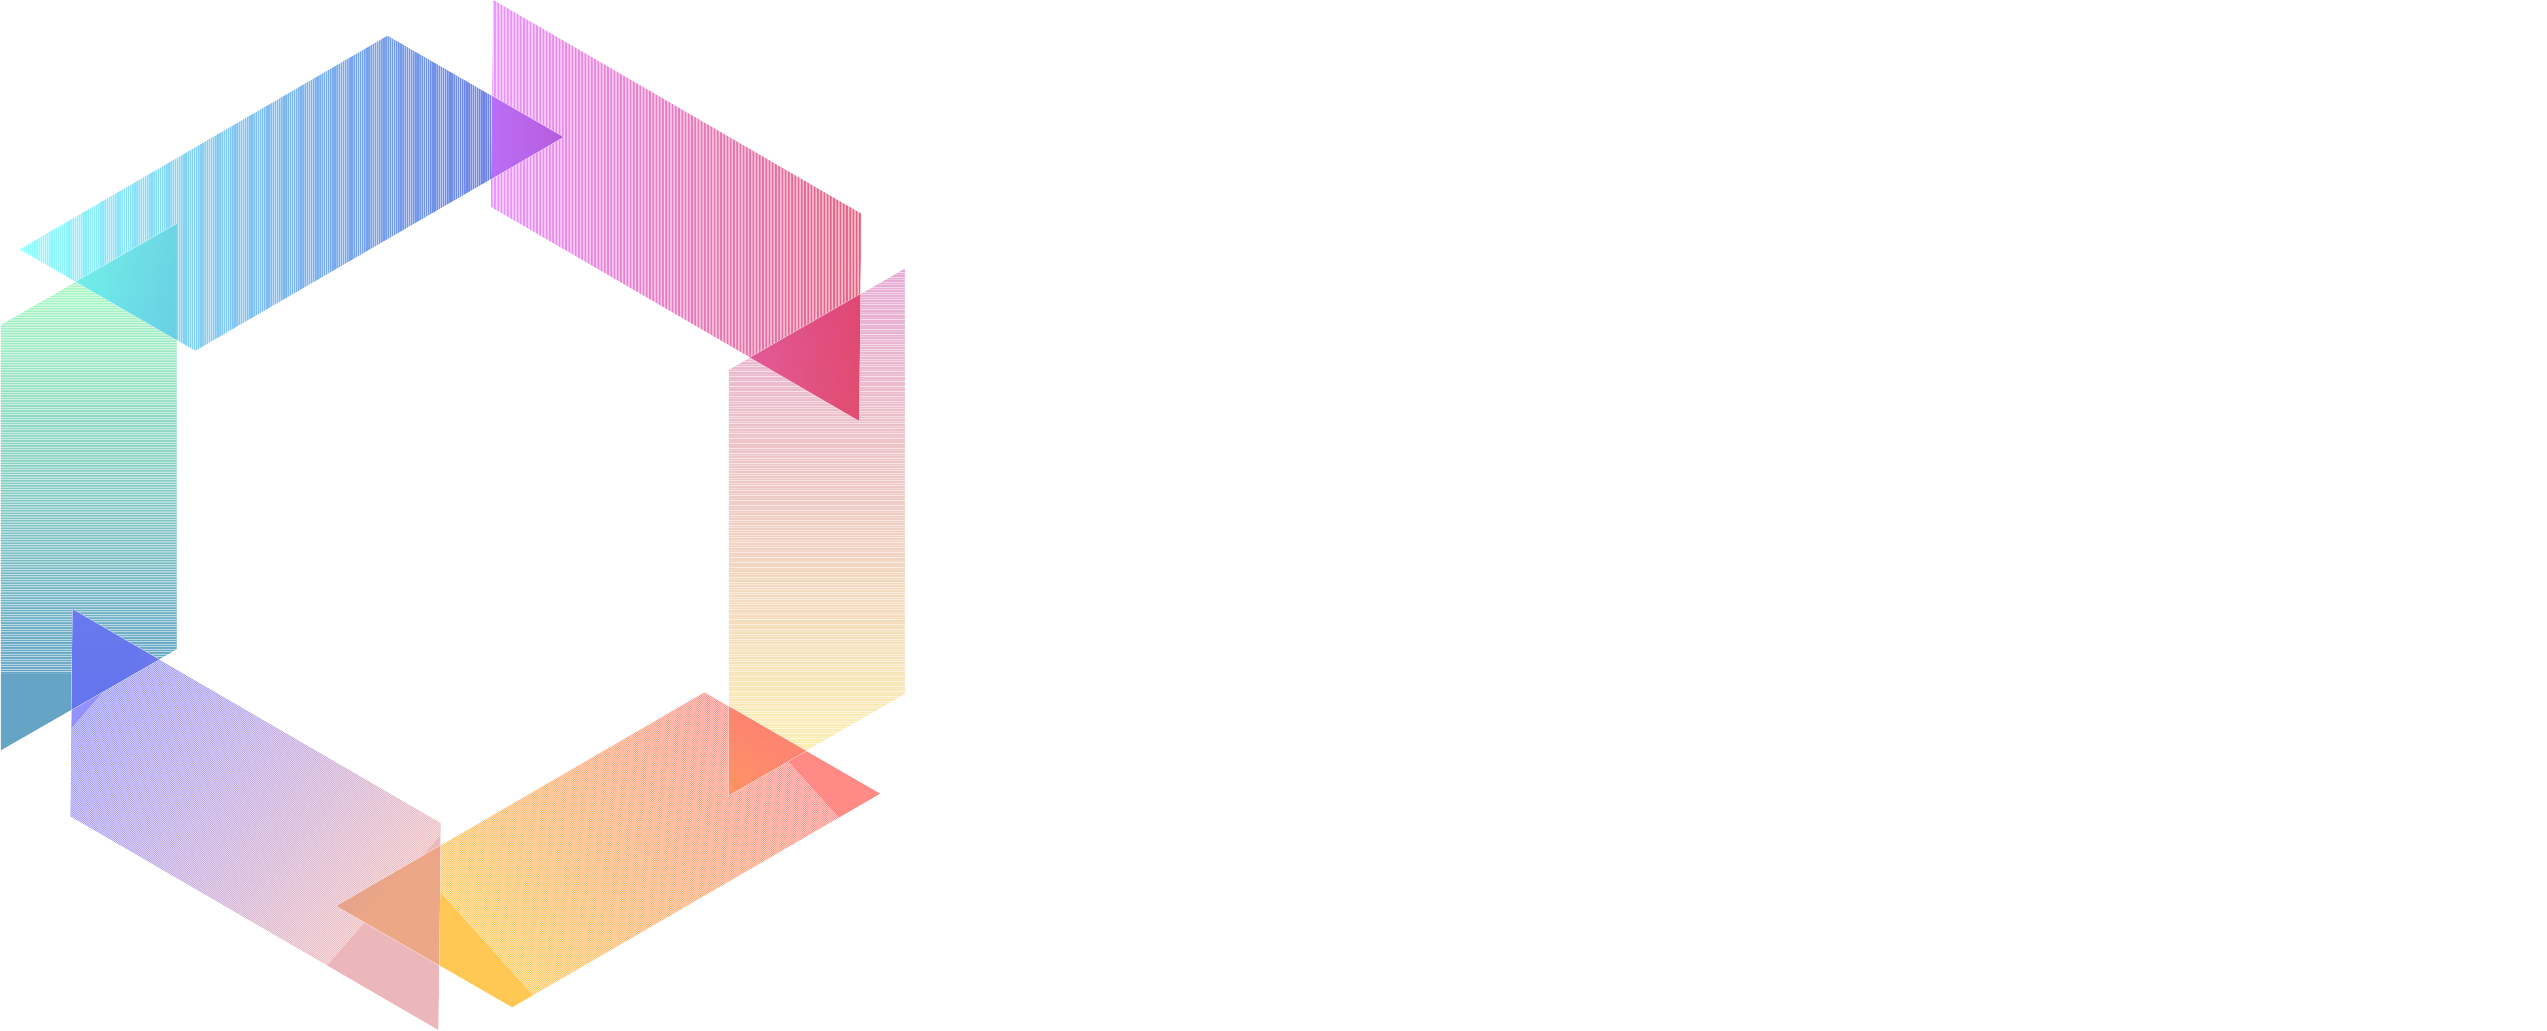 MultiFold